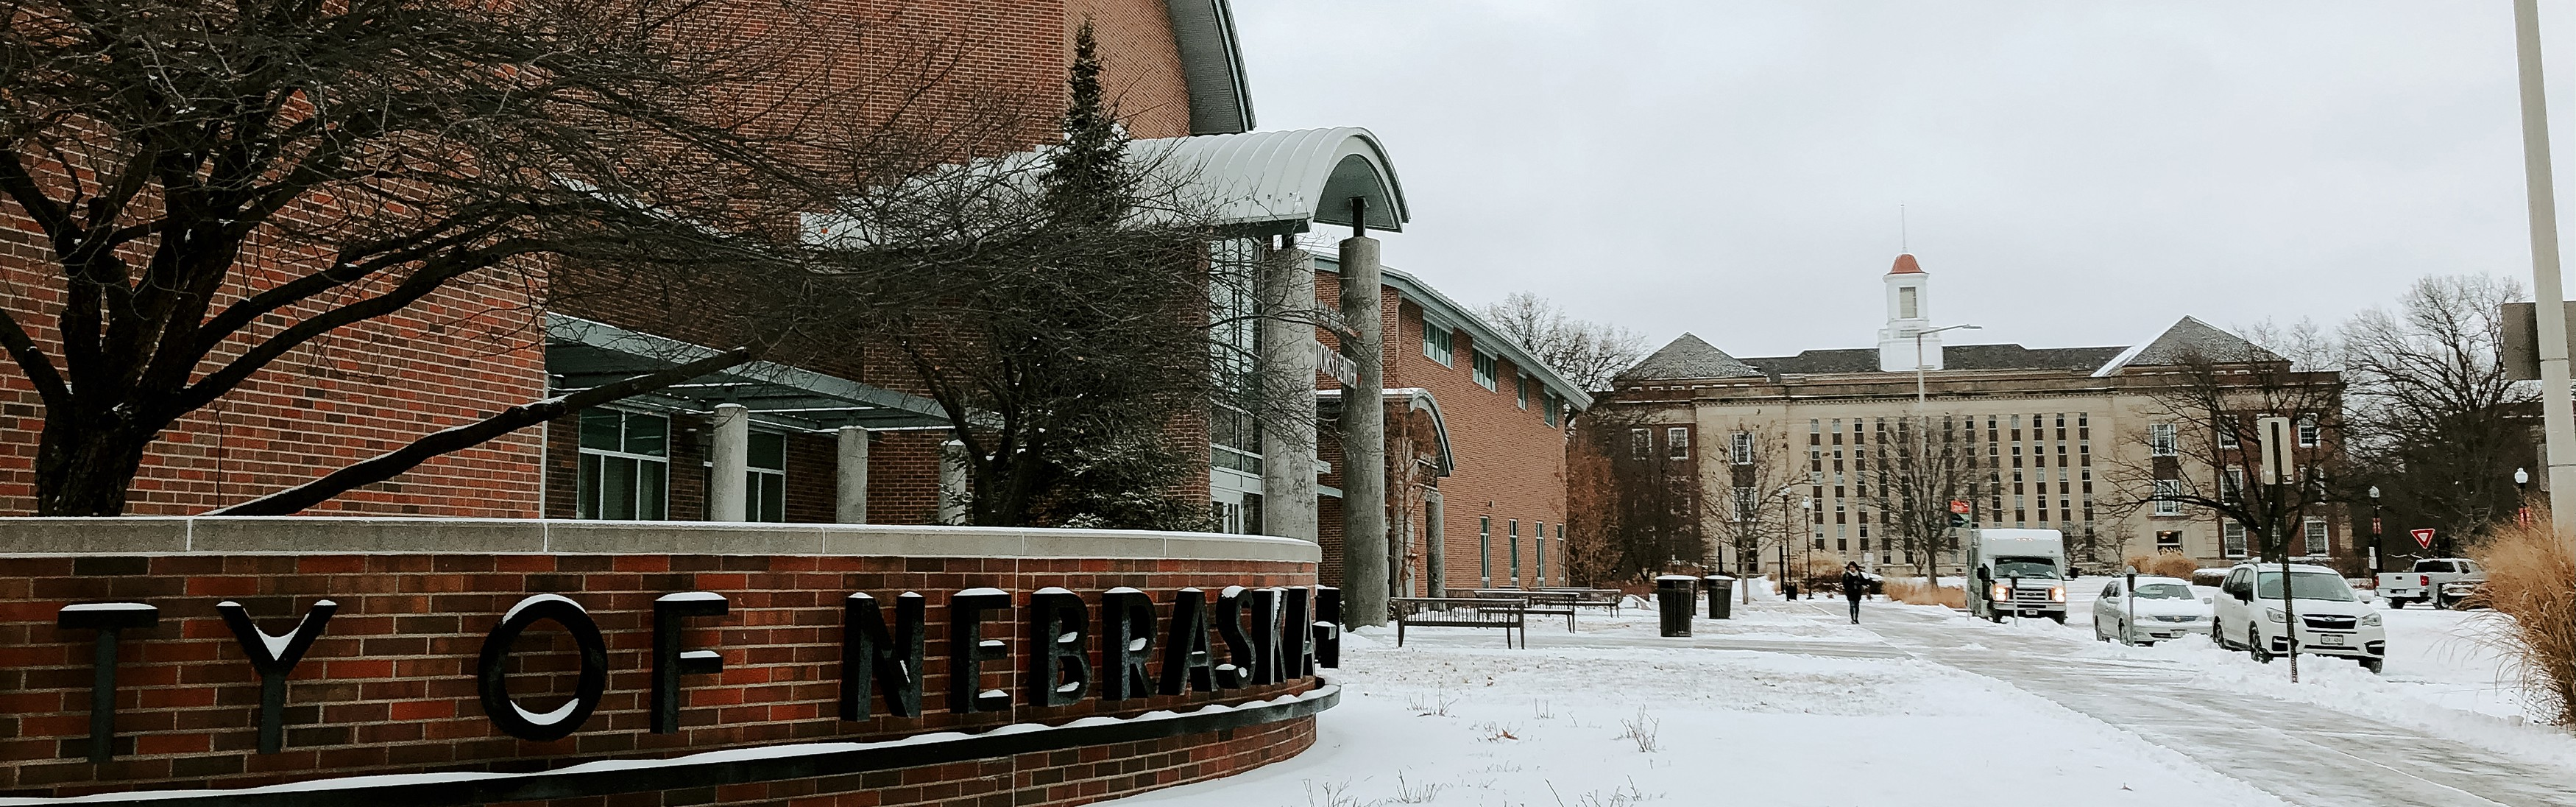 Snow covers the ground surrounding the Visitors Center with Love Library in the distance.